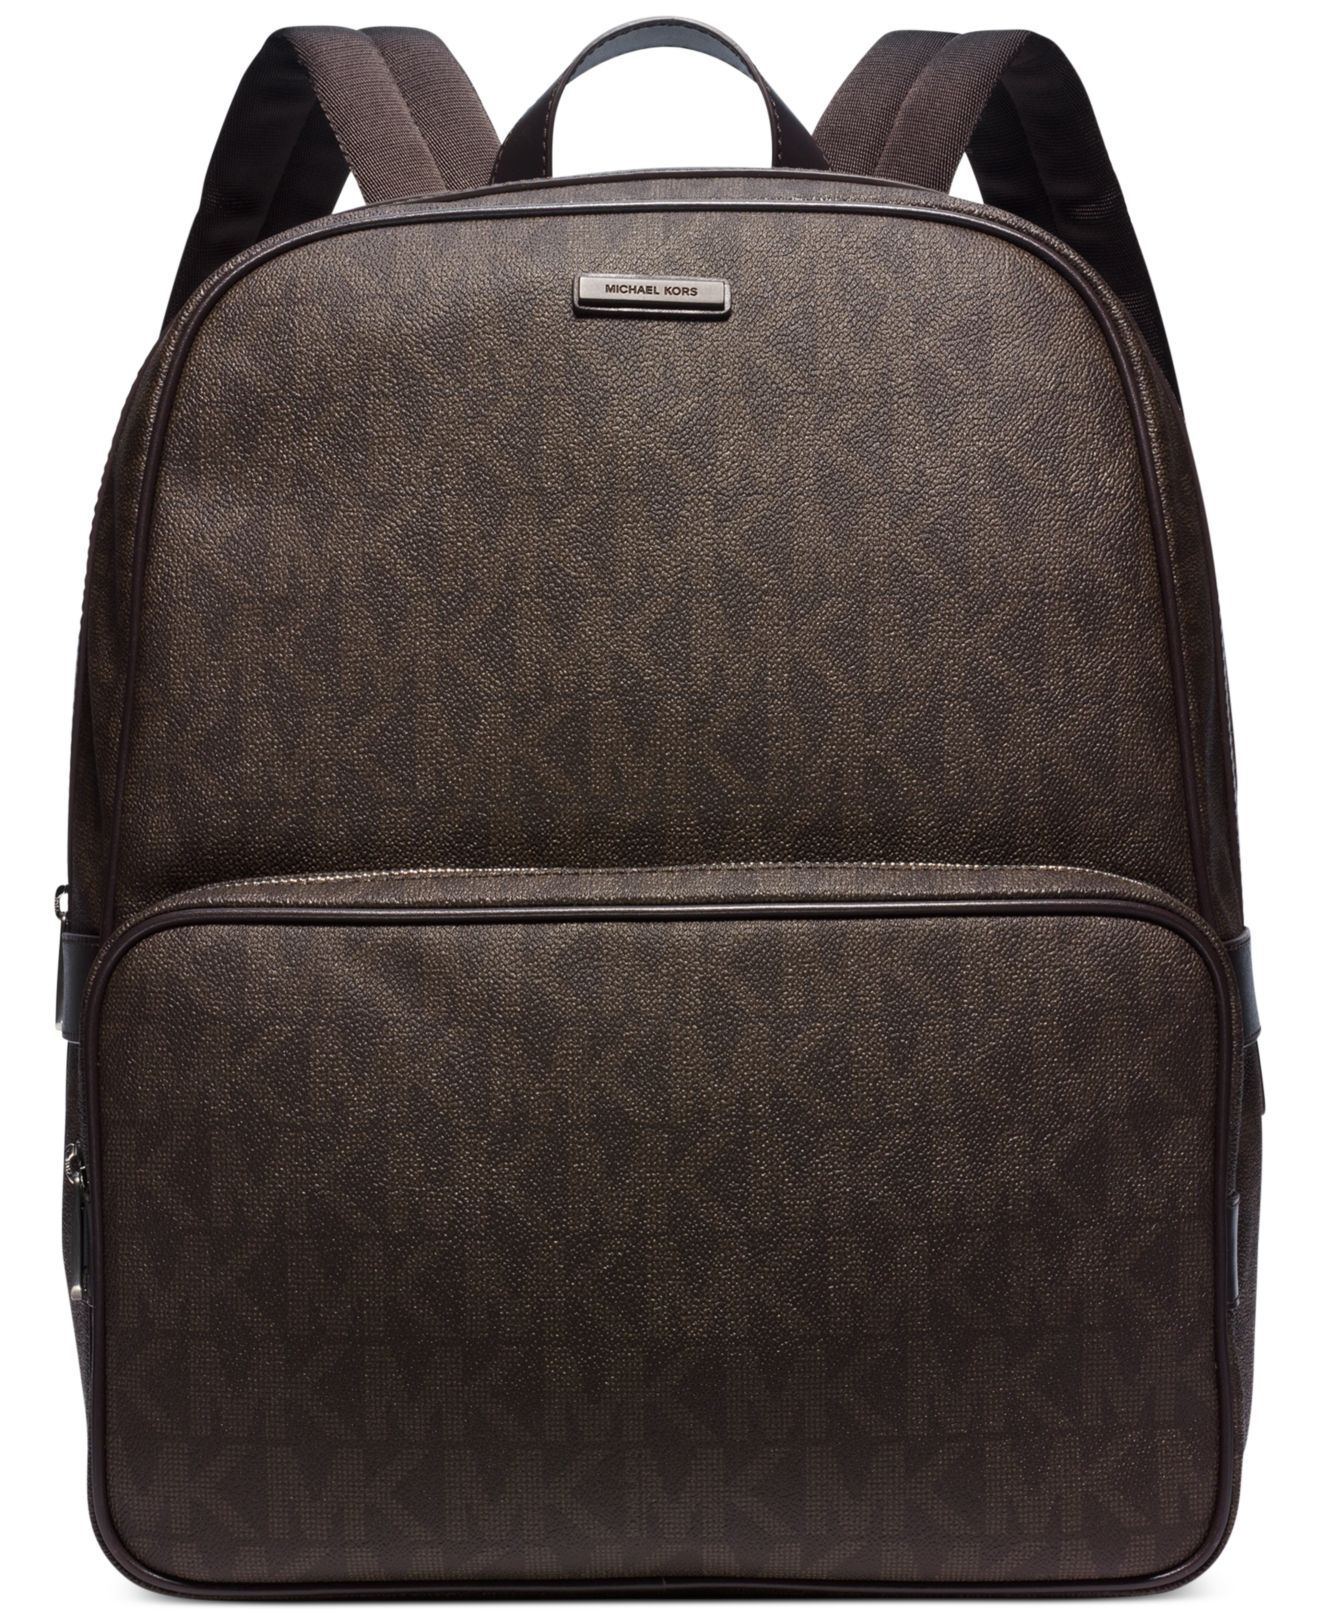 Lyst Michael Kors Jet Set Shadow Backpack In Brown For Men